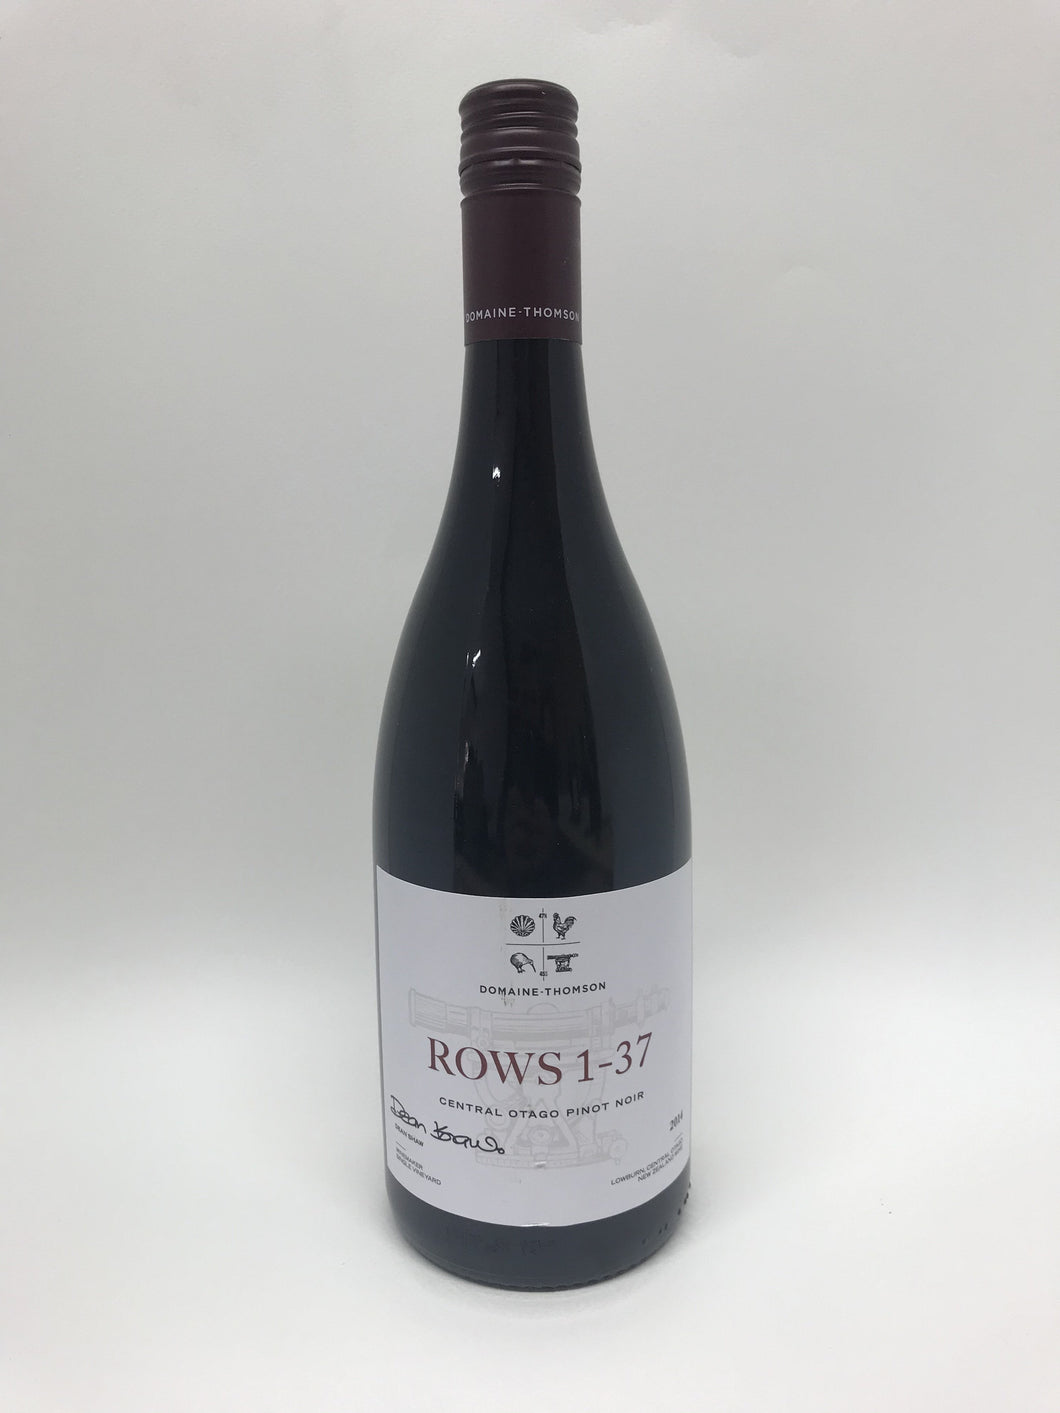 Domaine Thomson - Surveyor Row 1-37 pinot noir 14 750ml